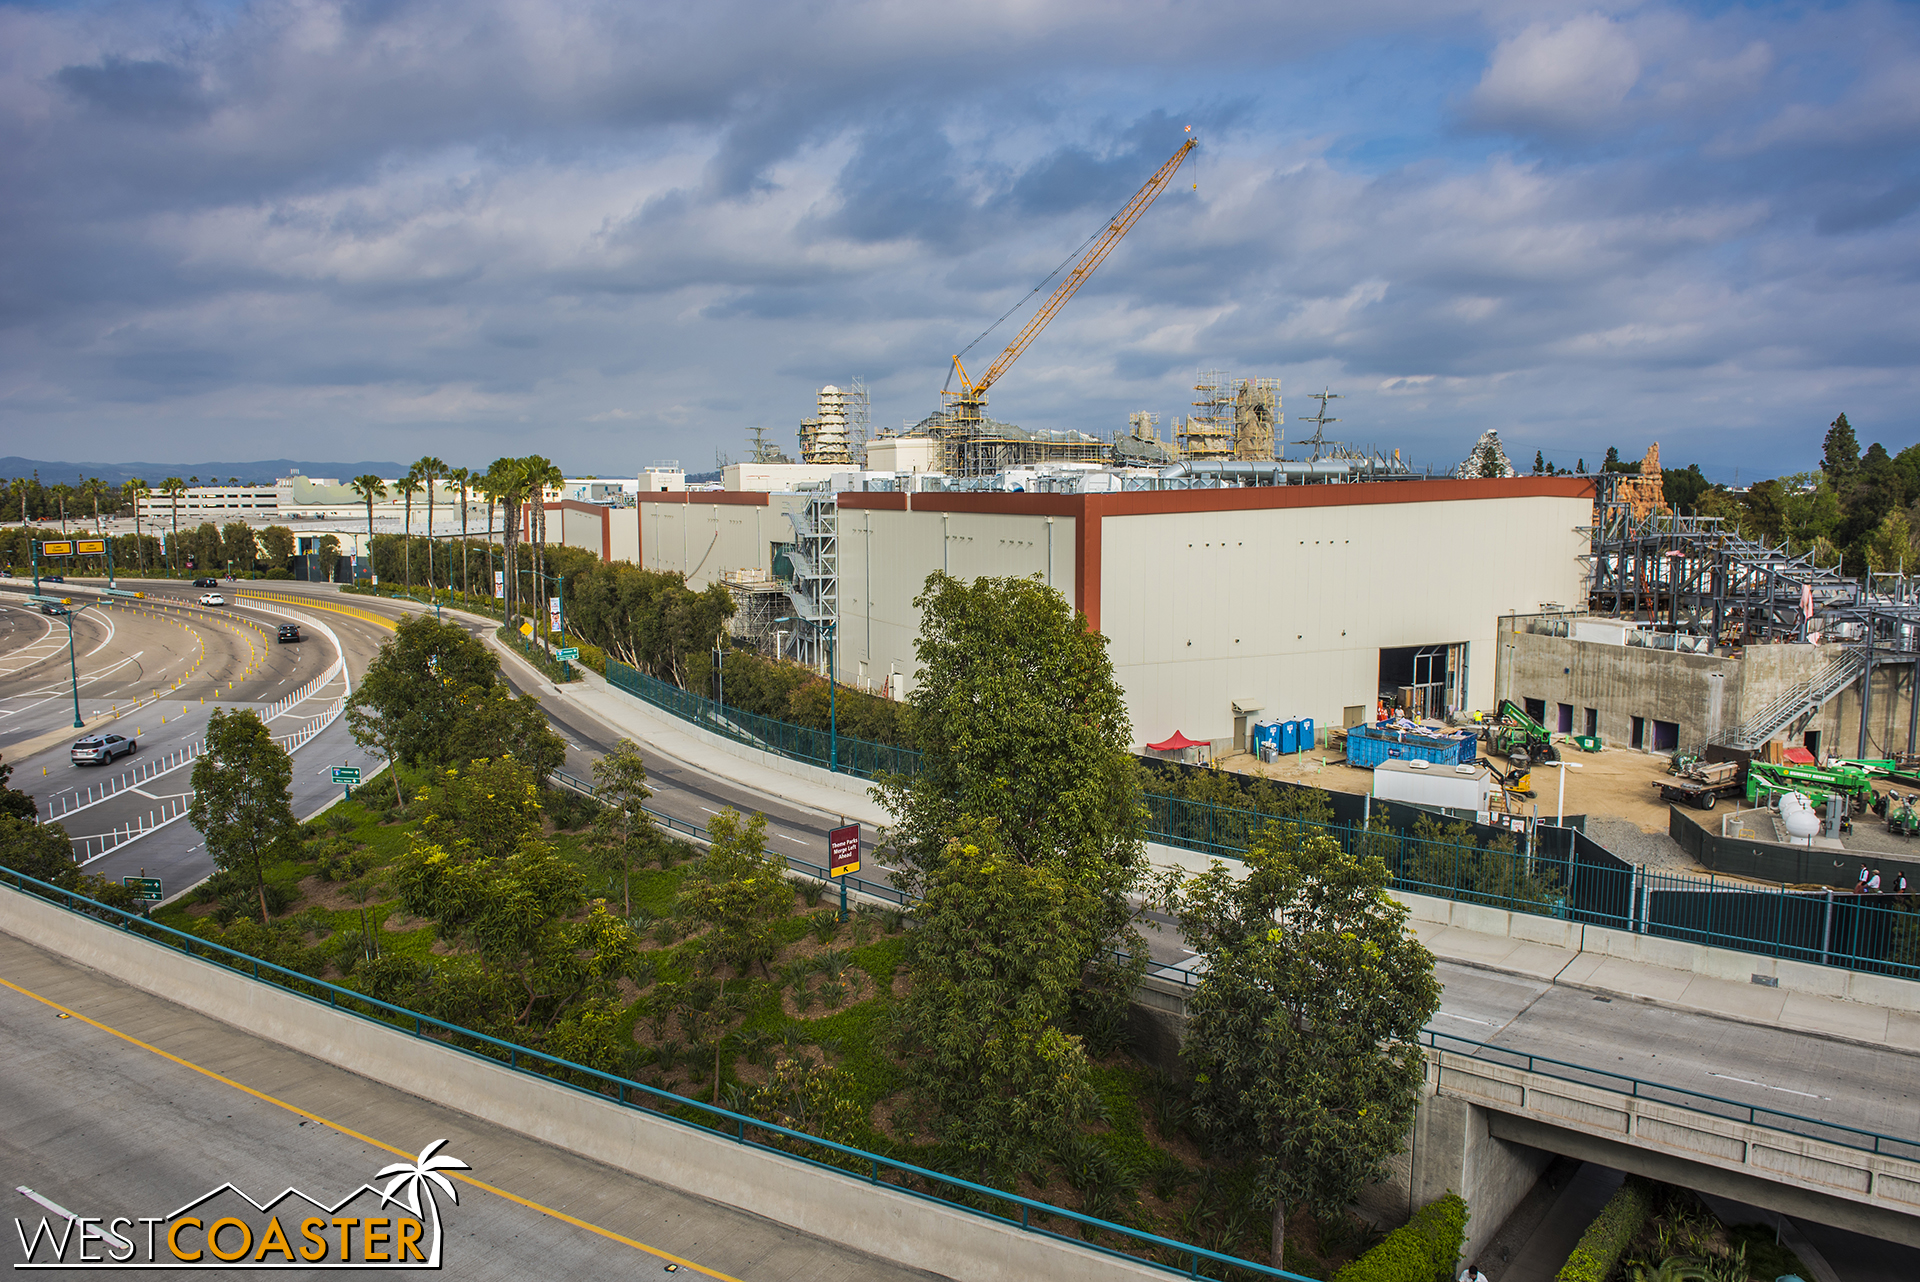 ...because this time around, as we pan across, you'll end up being able to see more than one Resort construction project!